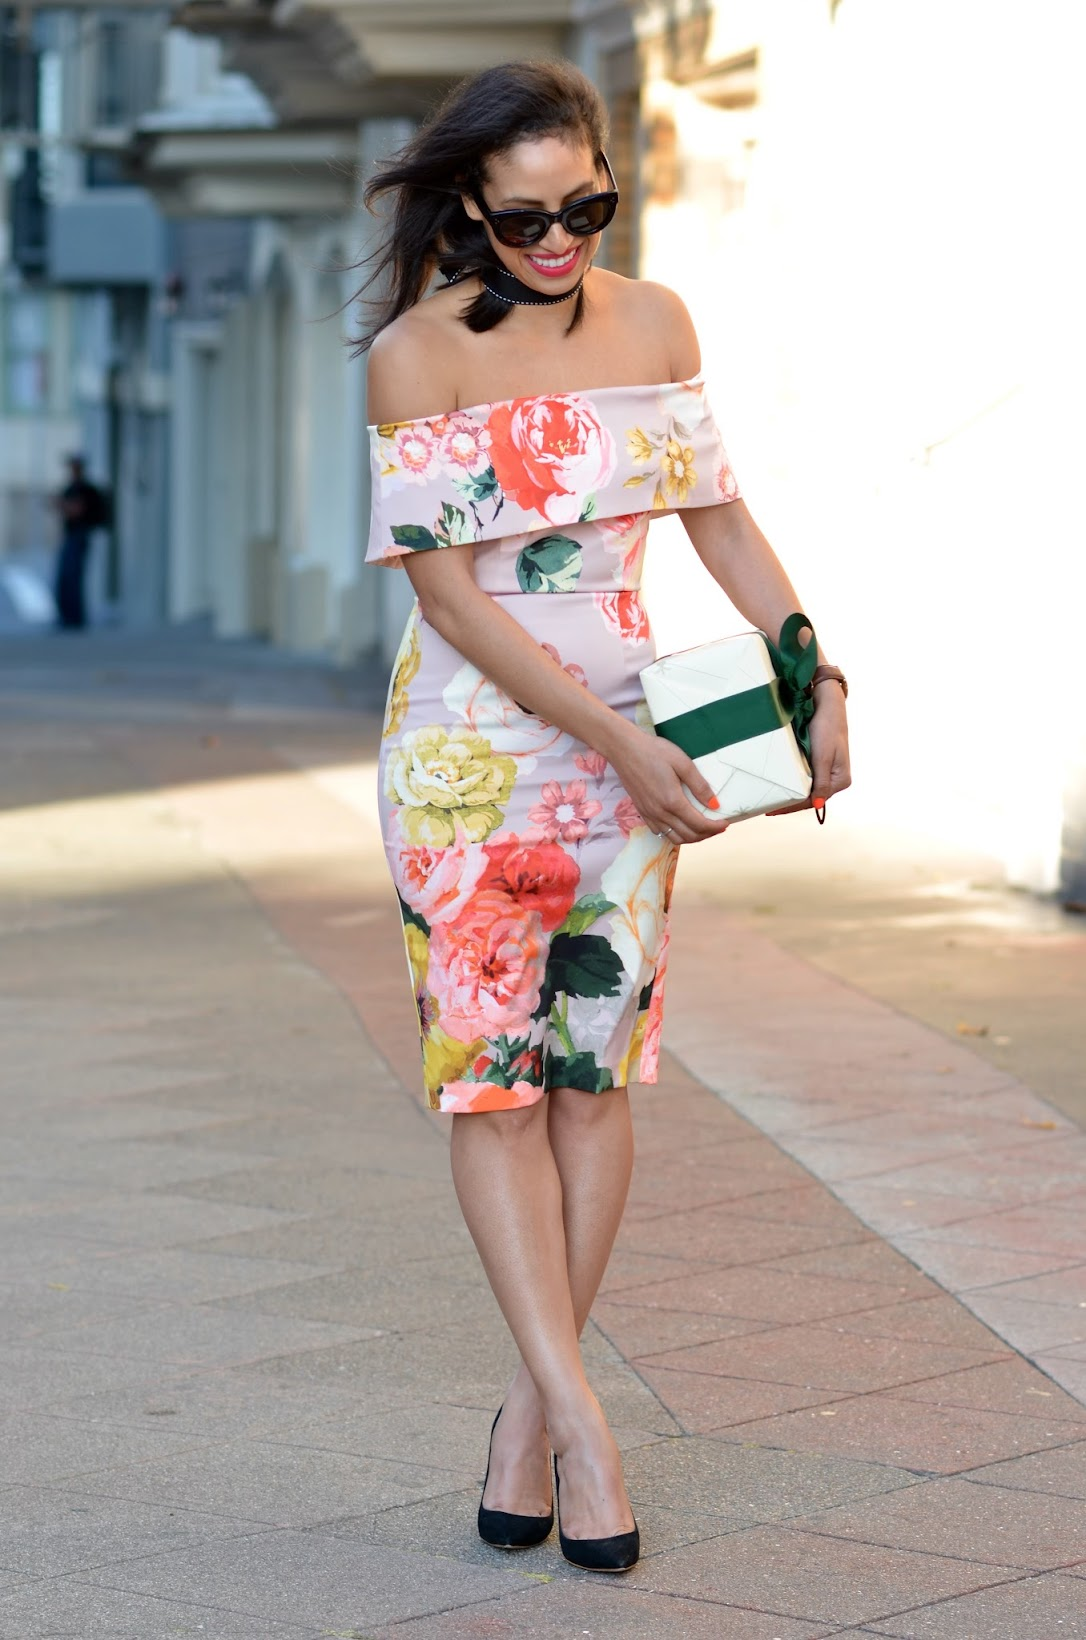 Allergic To Vanilla, wedding season, what to wear to a wedding, how to look chic at a wedding, summer wedding style, floral off the shoulder dress, floral garden dress, off the shoulder, flirty and feminine dress, asos summer dress